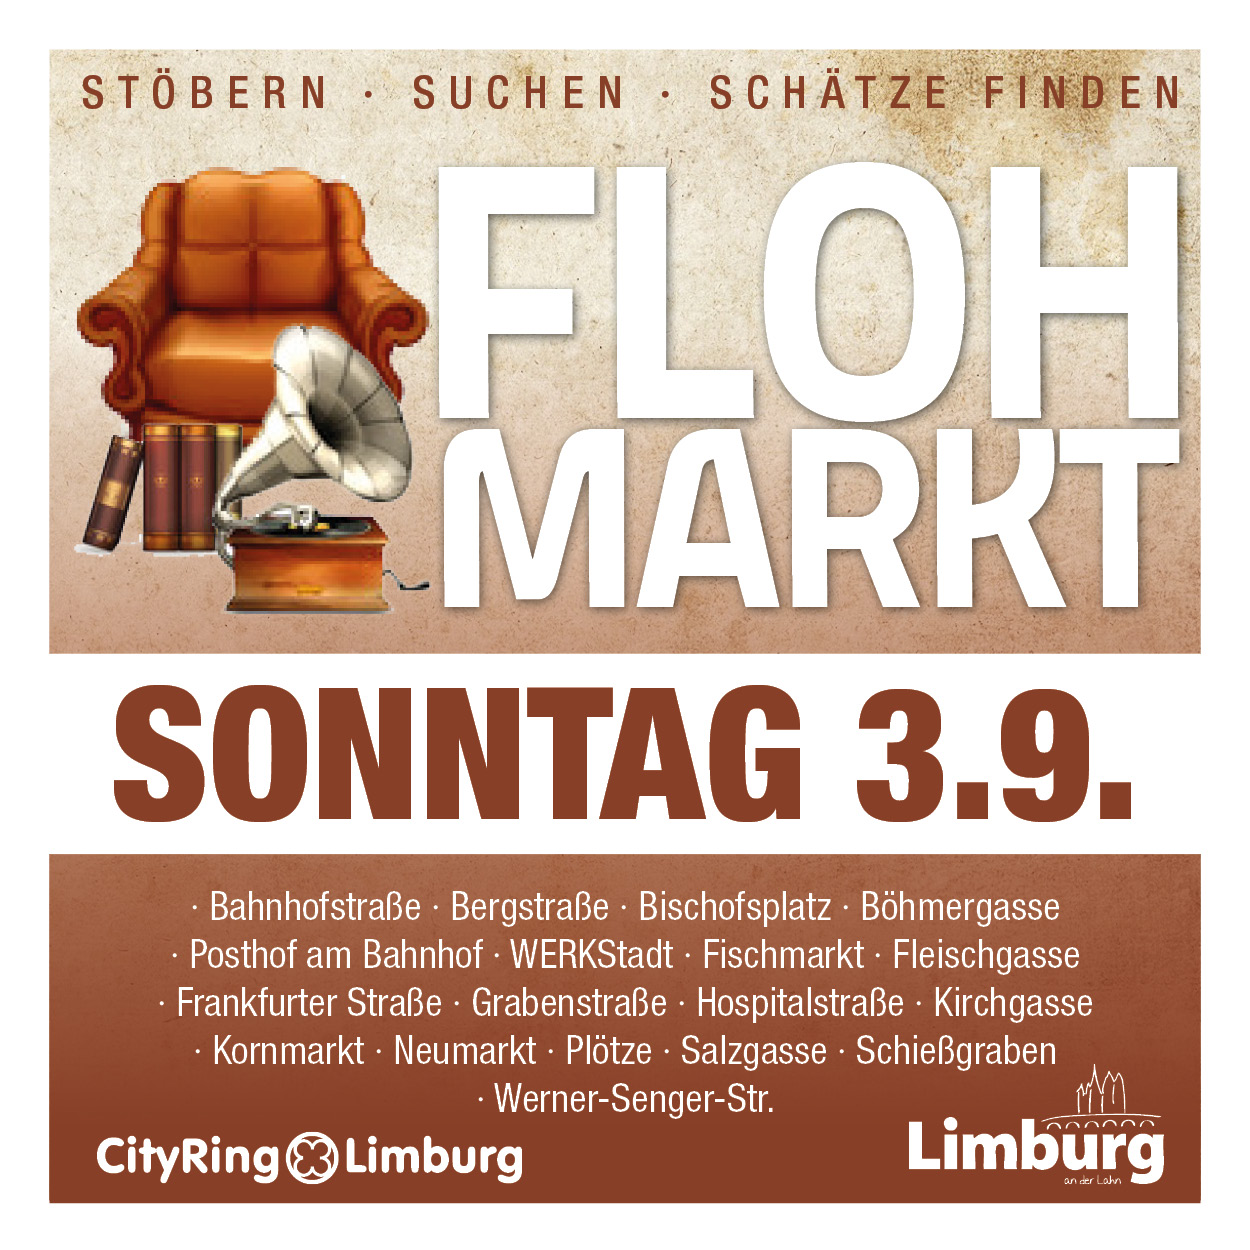 47 limburger flohmarkt am sonntag 3 september 2017 cityring limburg. Black Bedroom Furniture Sets. Home Design Ideas